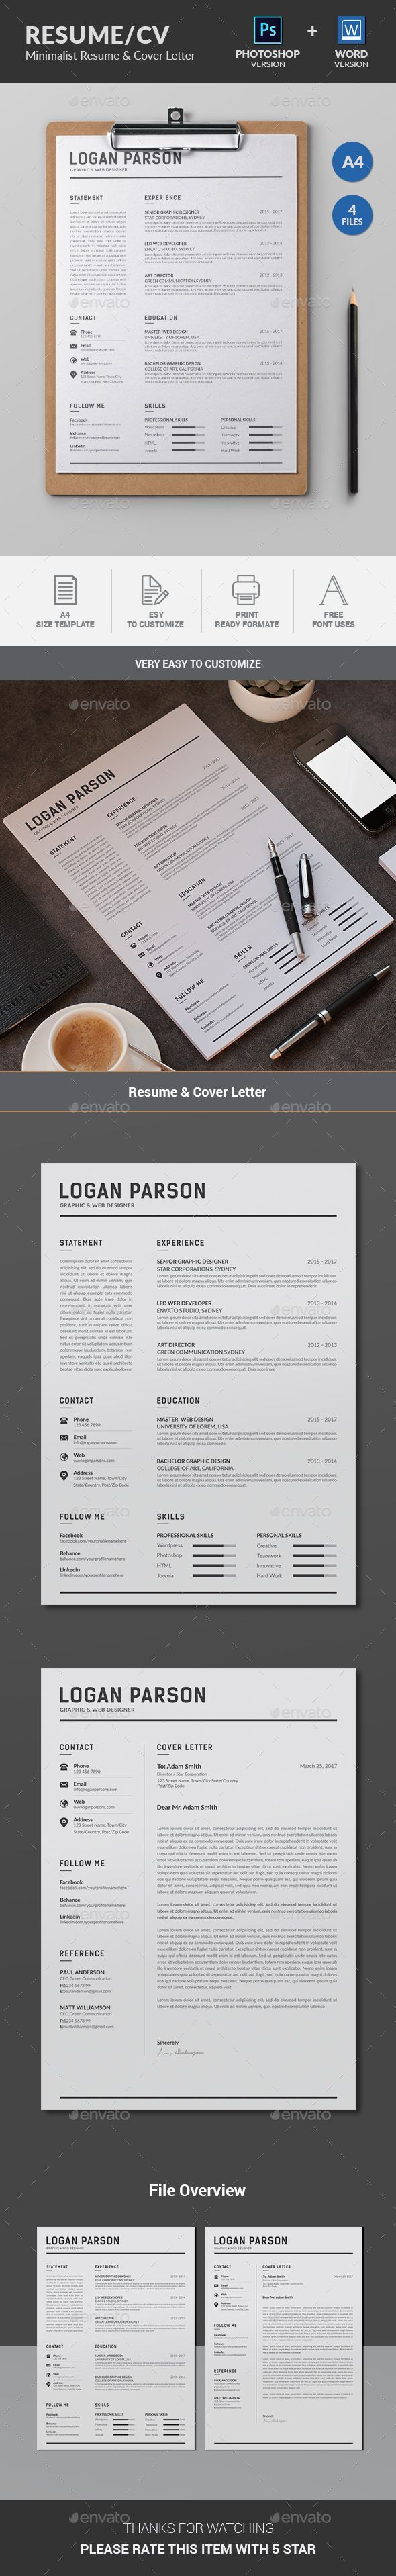 Resume Minimalist resume template focusing NameExperienceEducation and